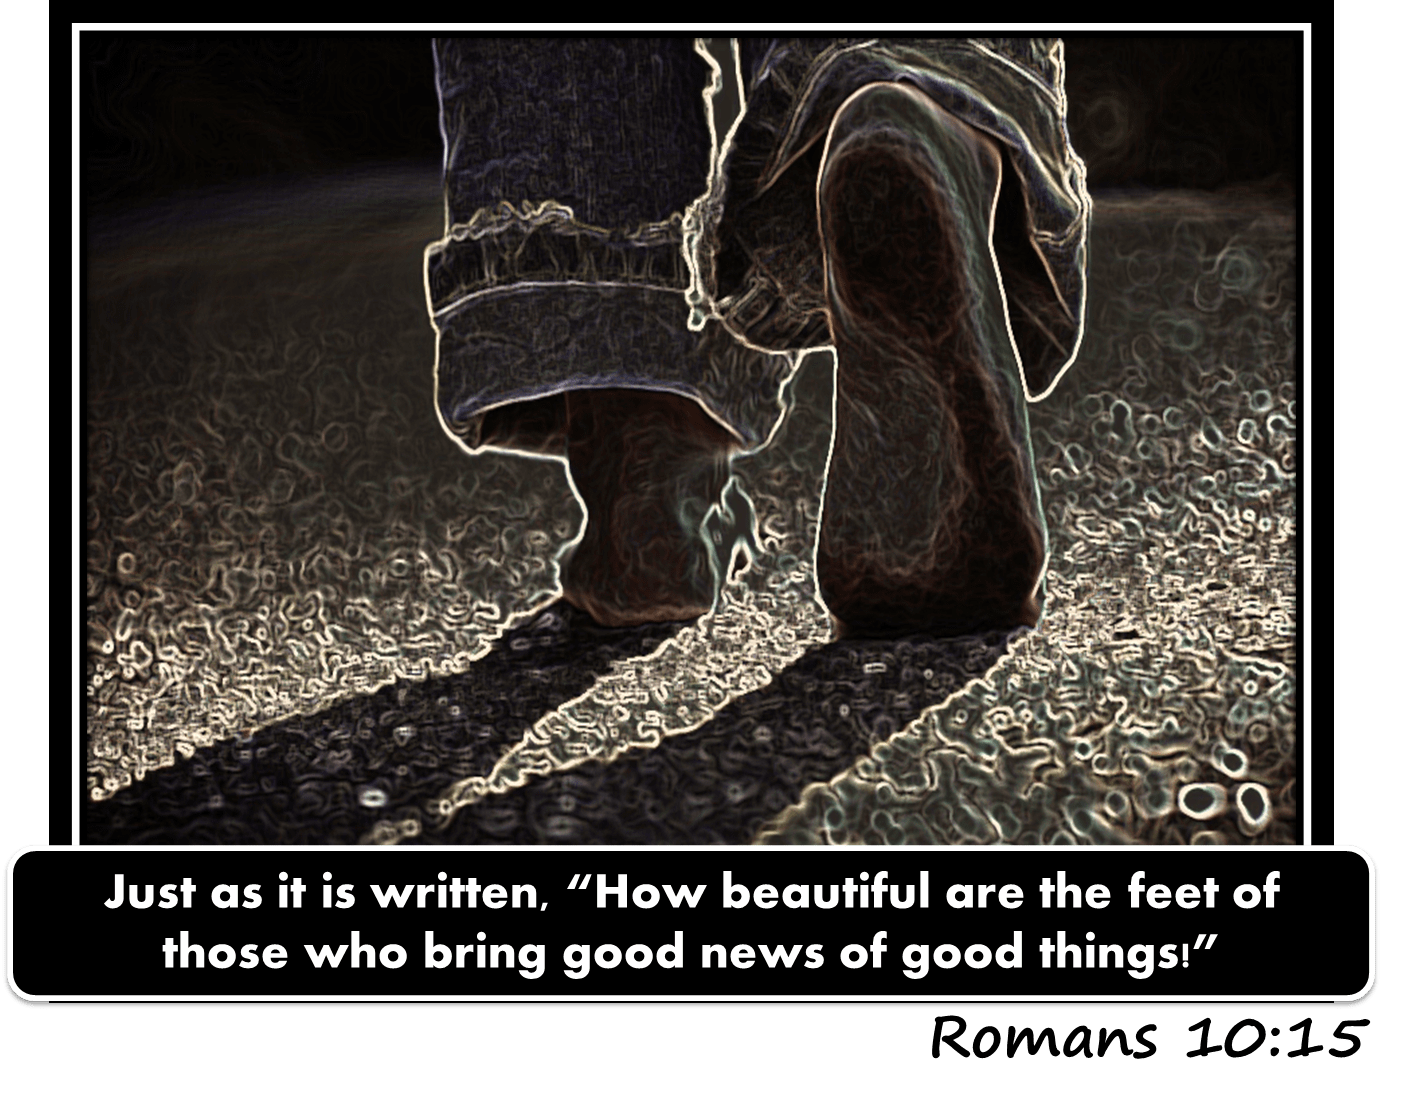 Beautiful Feet: Preach the Gospel!